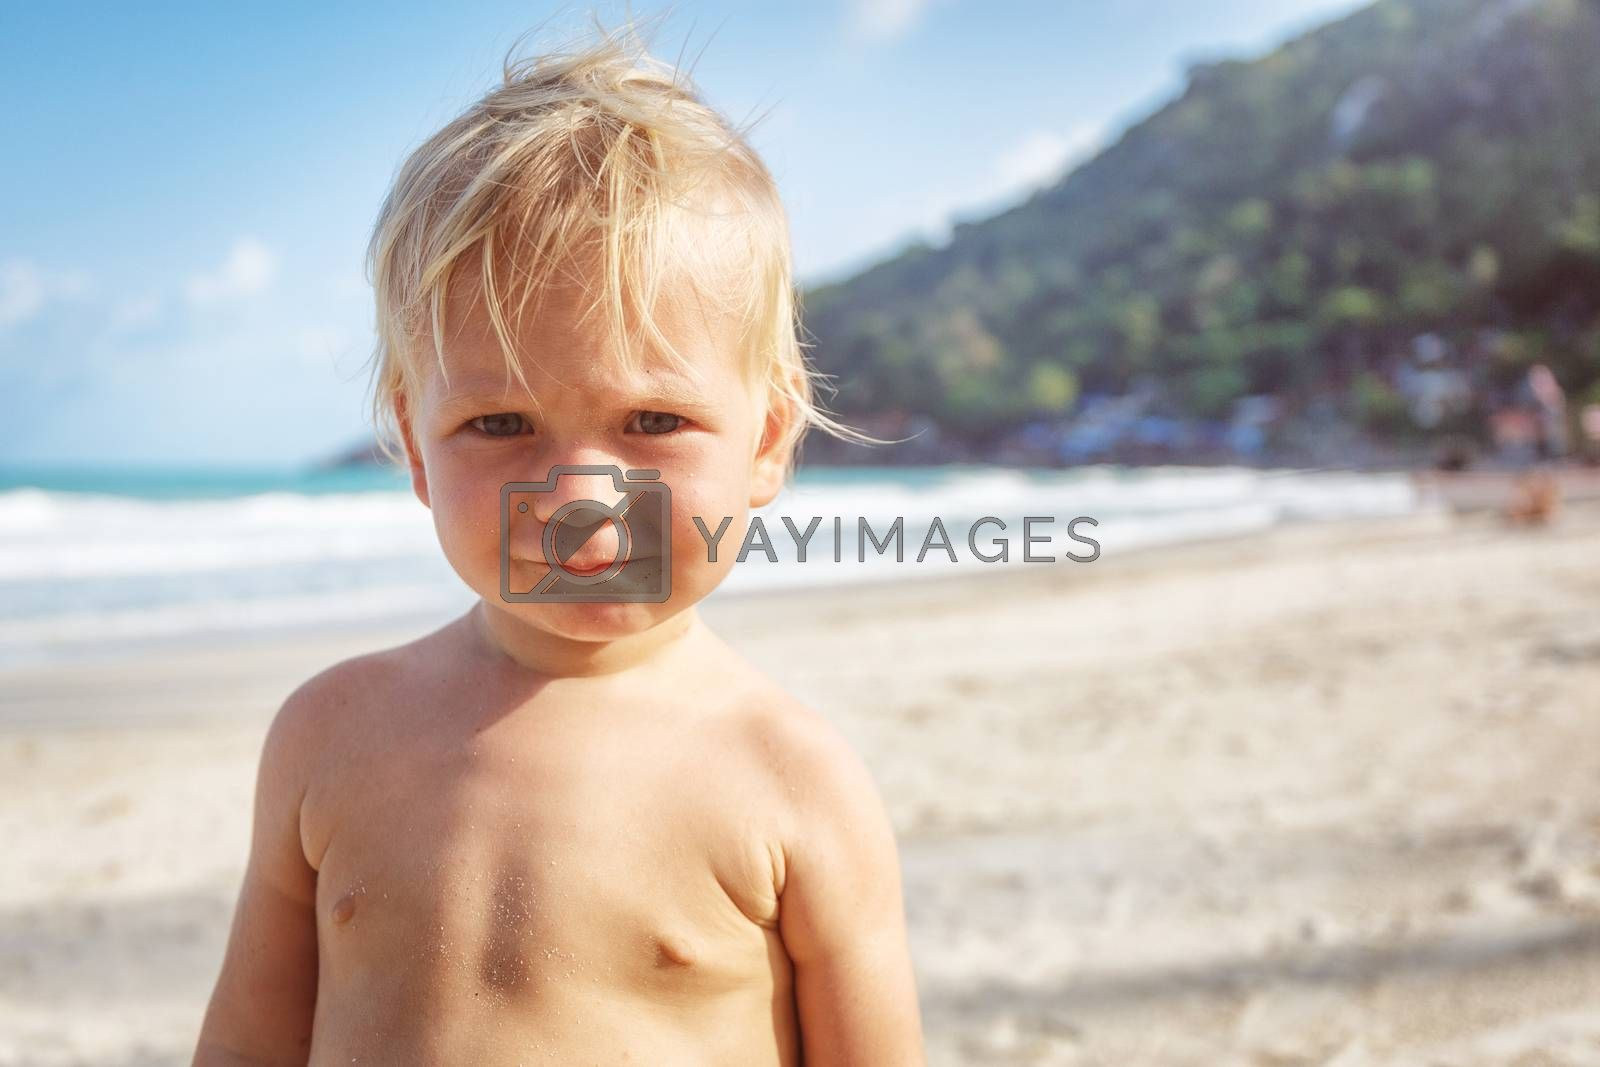 Portrait of a baby with a naked torso on the beach